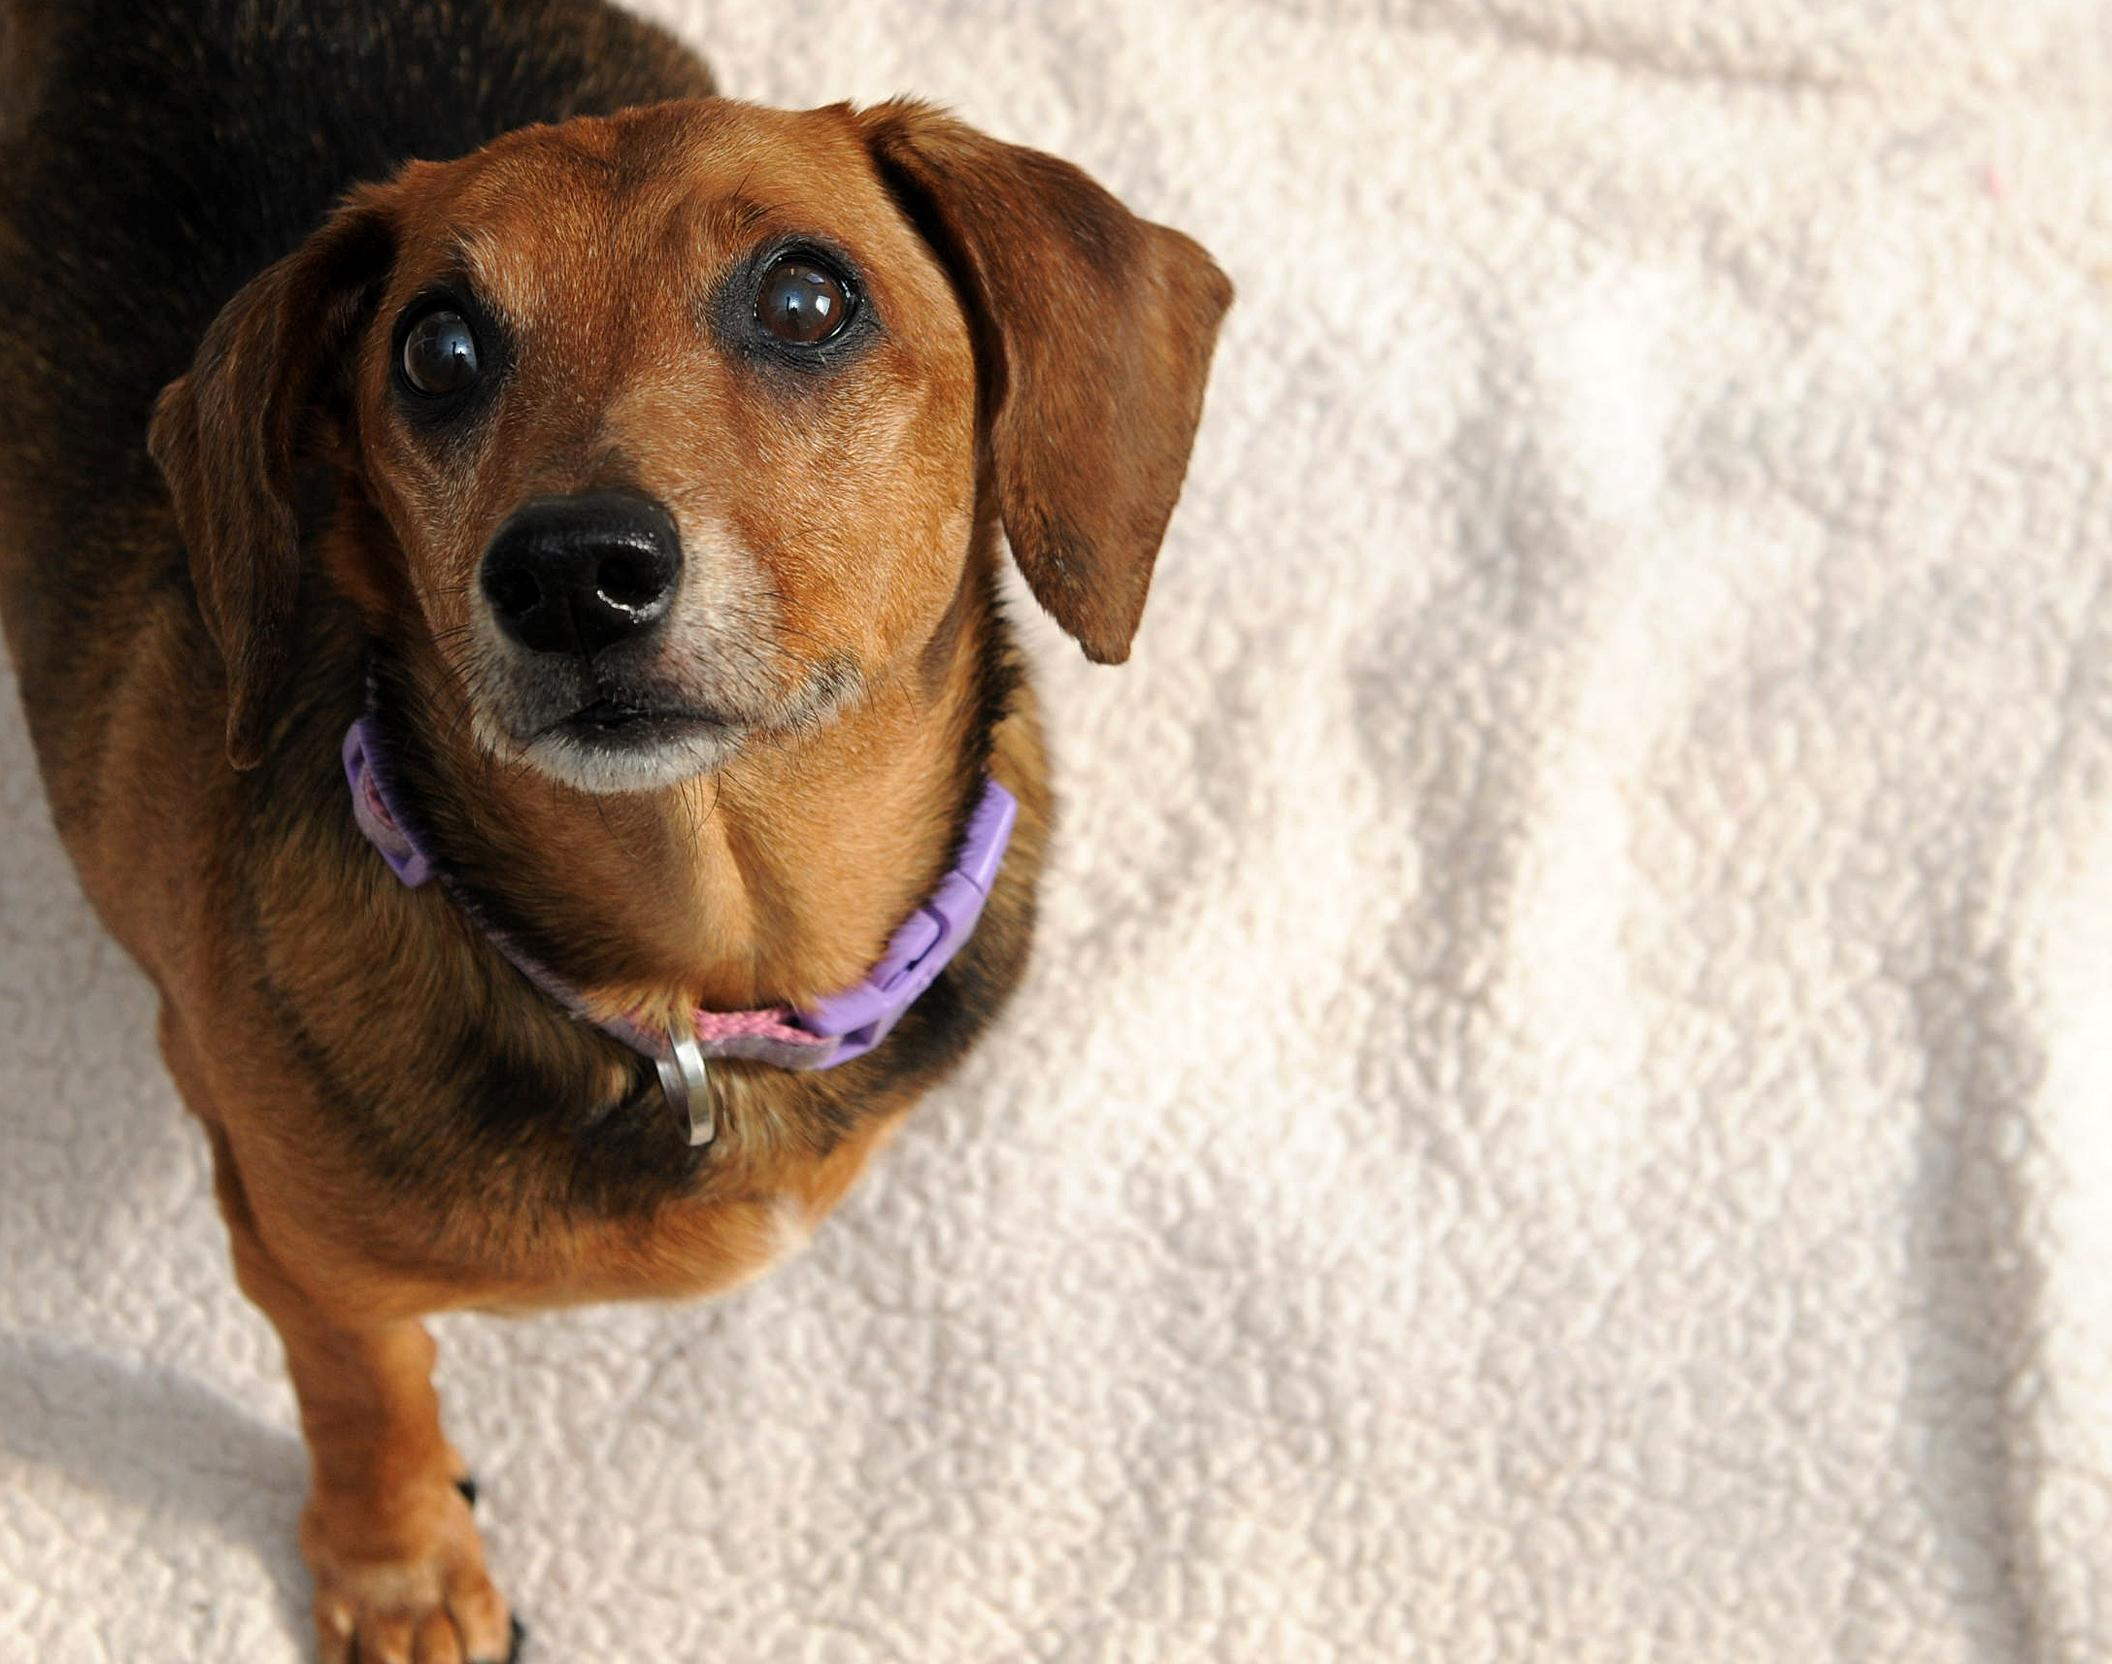 This little lady is 12-years-old and looking for her forever home. As a senior, she is laid back and likes to relax, so a home without children under 12-years-old would be best. (Humane Rescue Alliance)